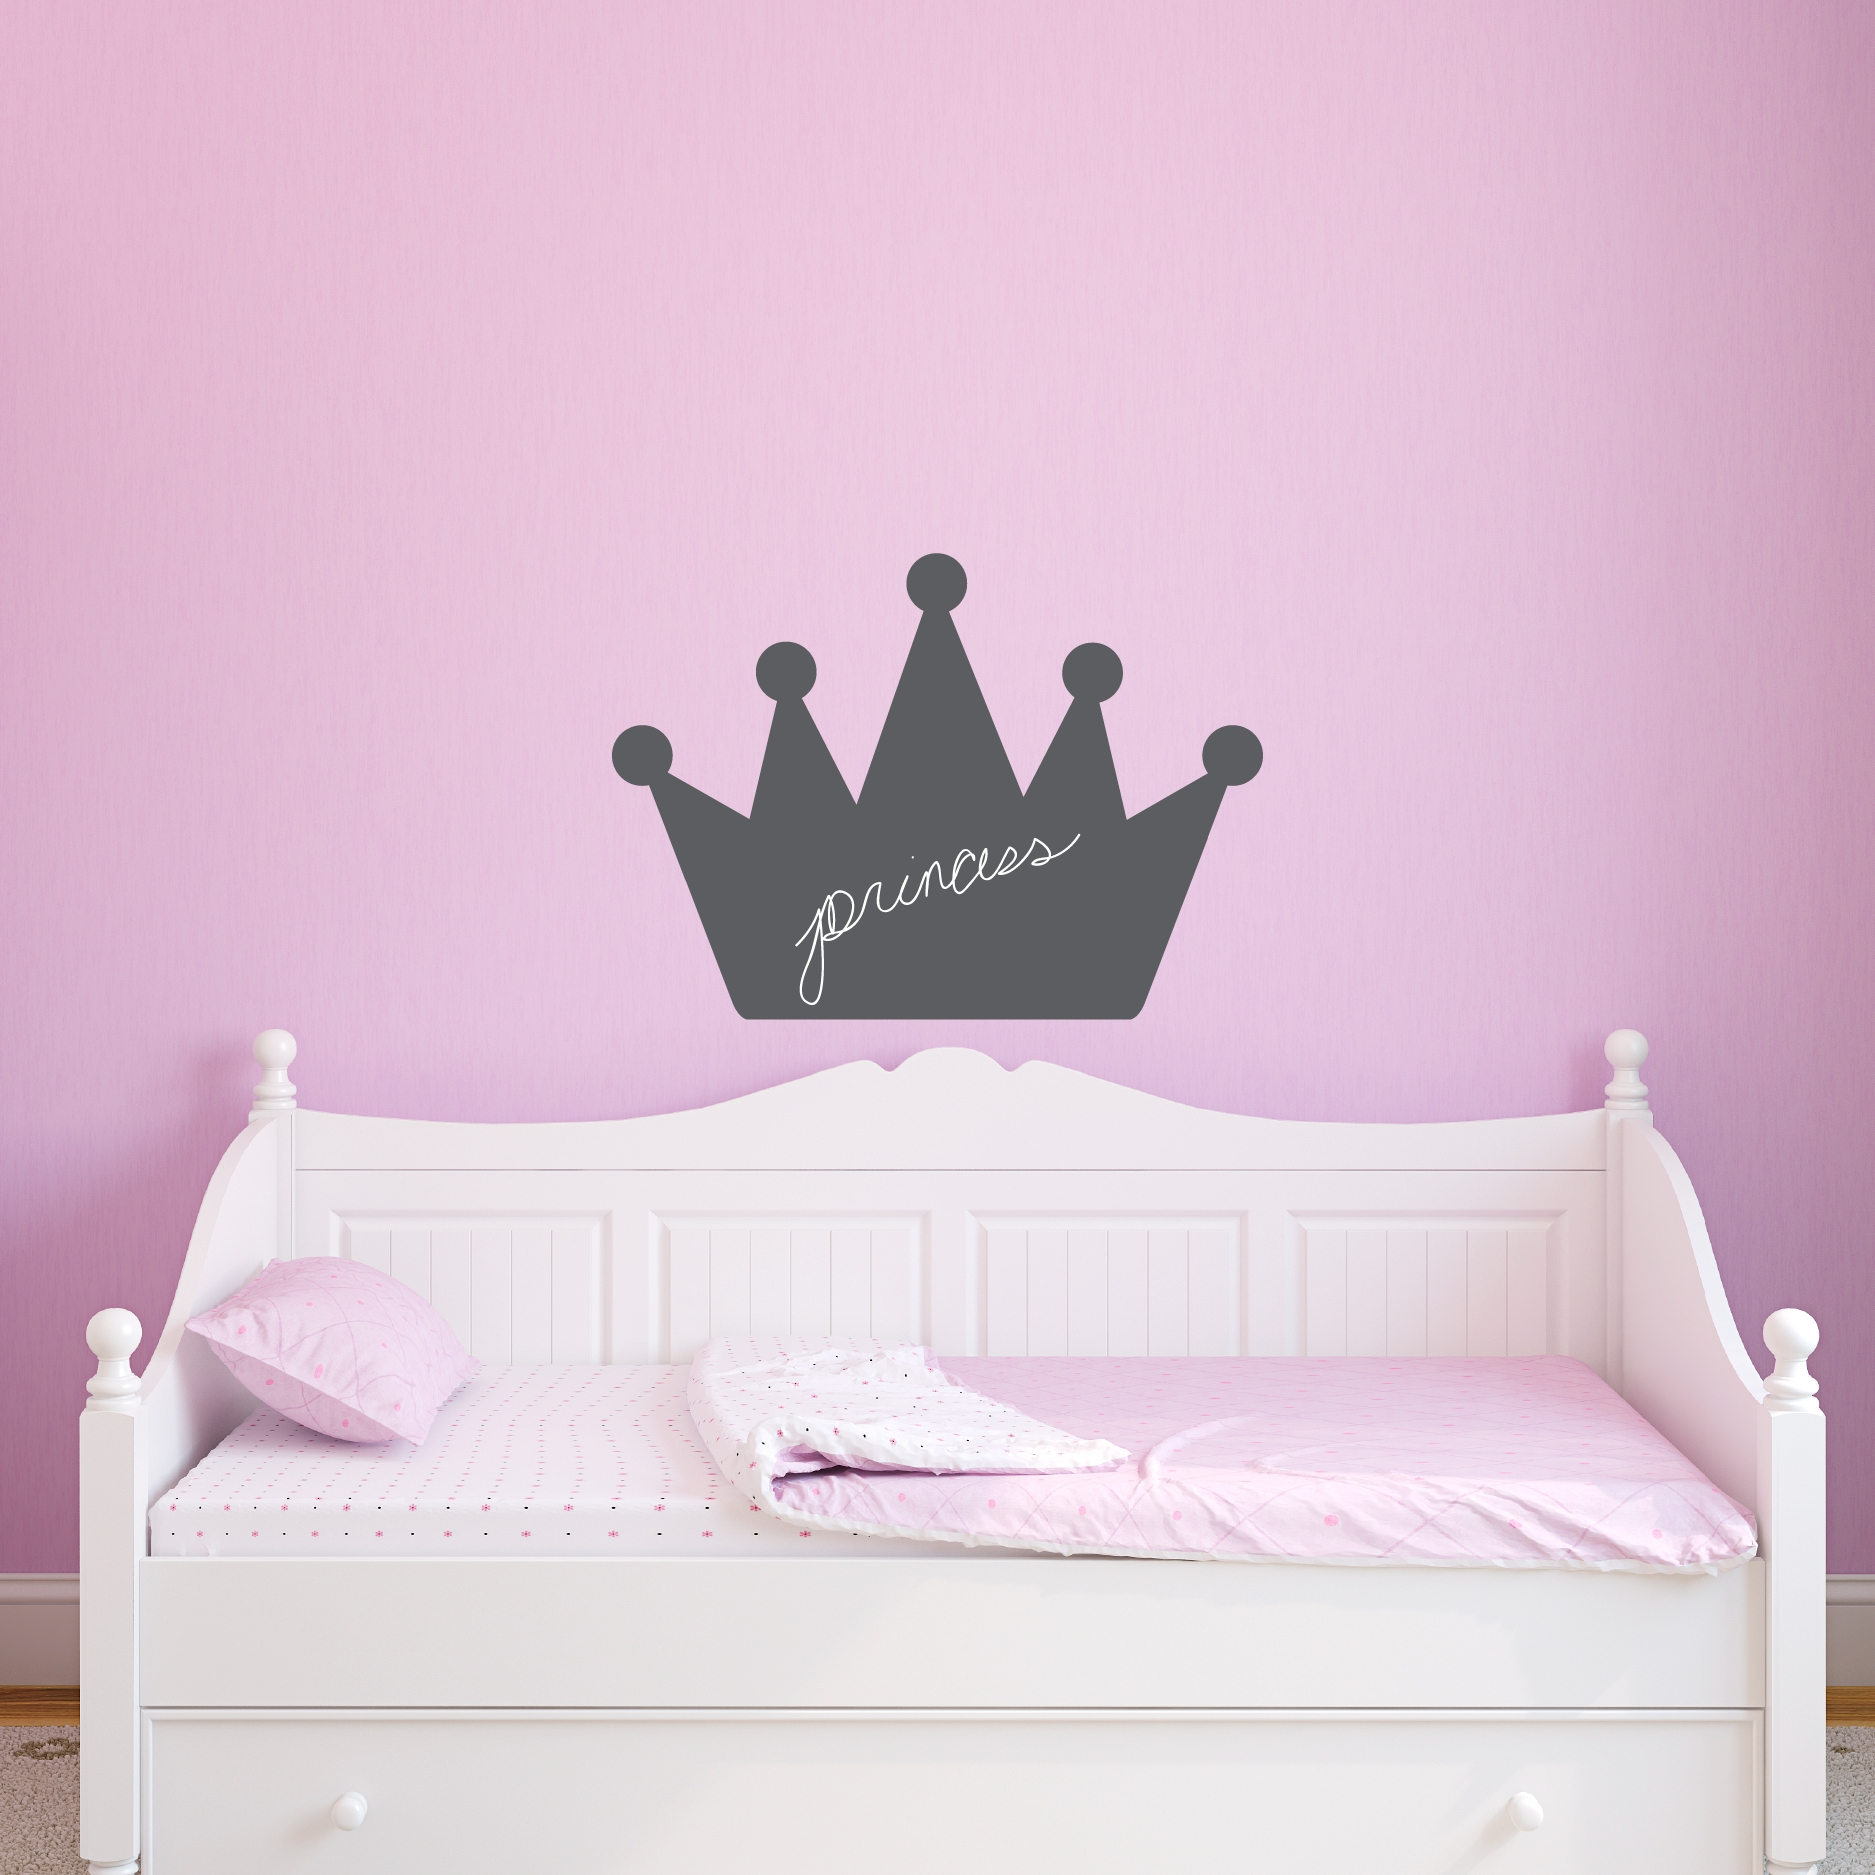 Chalkboard Princess Crown Wall Quotes™ Art Decal | Wallquotes Inside Most Recently Released Princess Crown Wall Art (View 2 of 25)